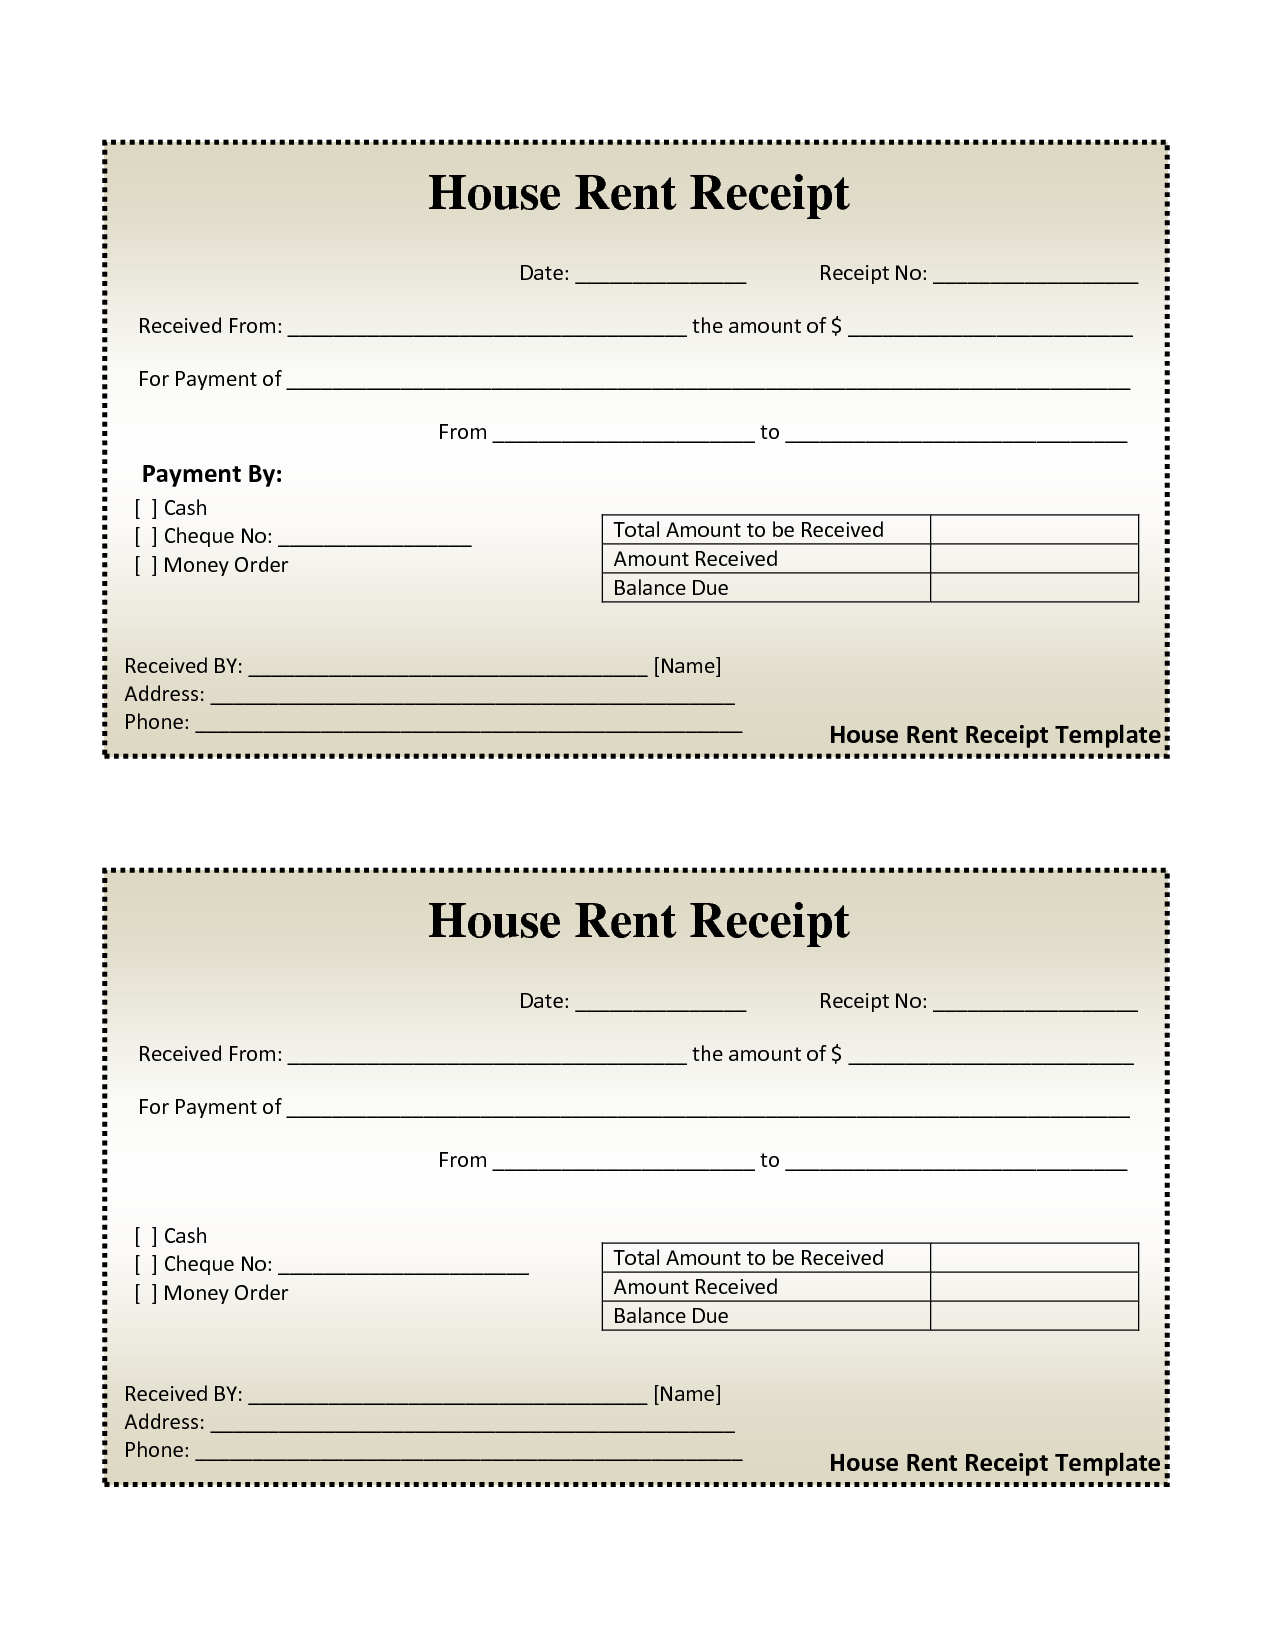 Free House Rental Invoice | House Rent Receipt Template - Doc - Free Printable Rent Receipt